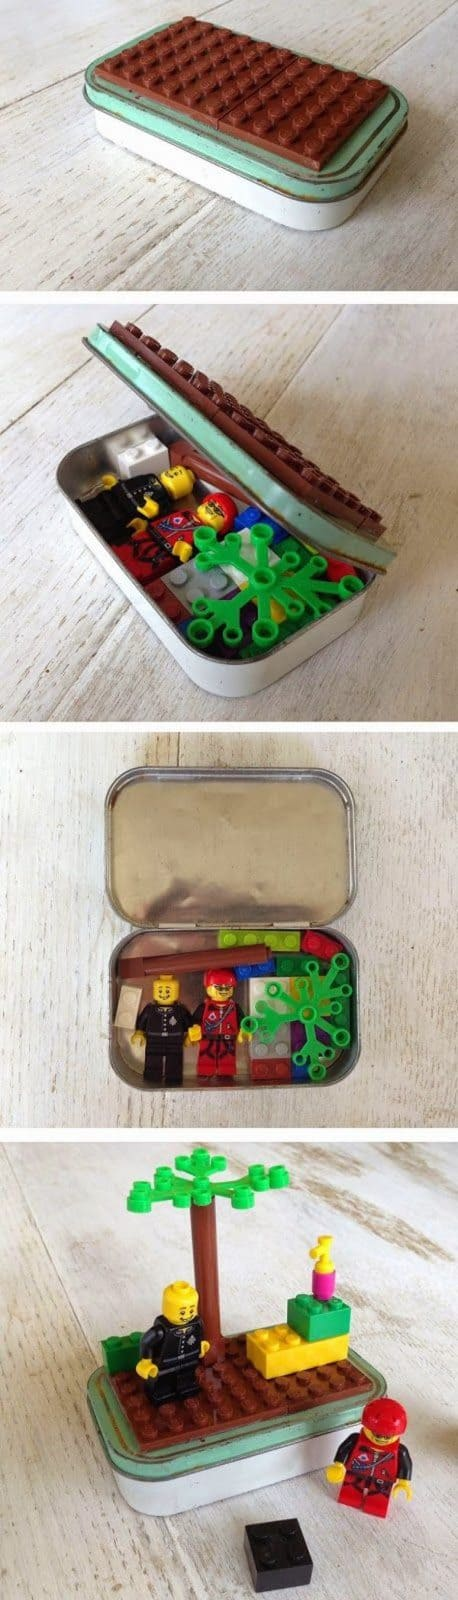 Altoid Tin Toys: Turn the tin into a portable LEGO playset